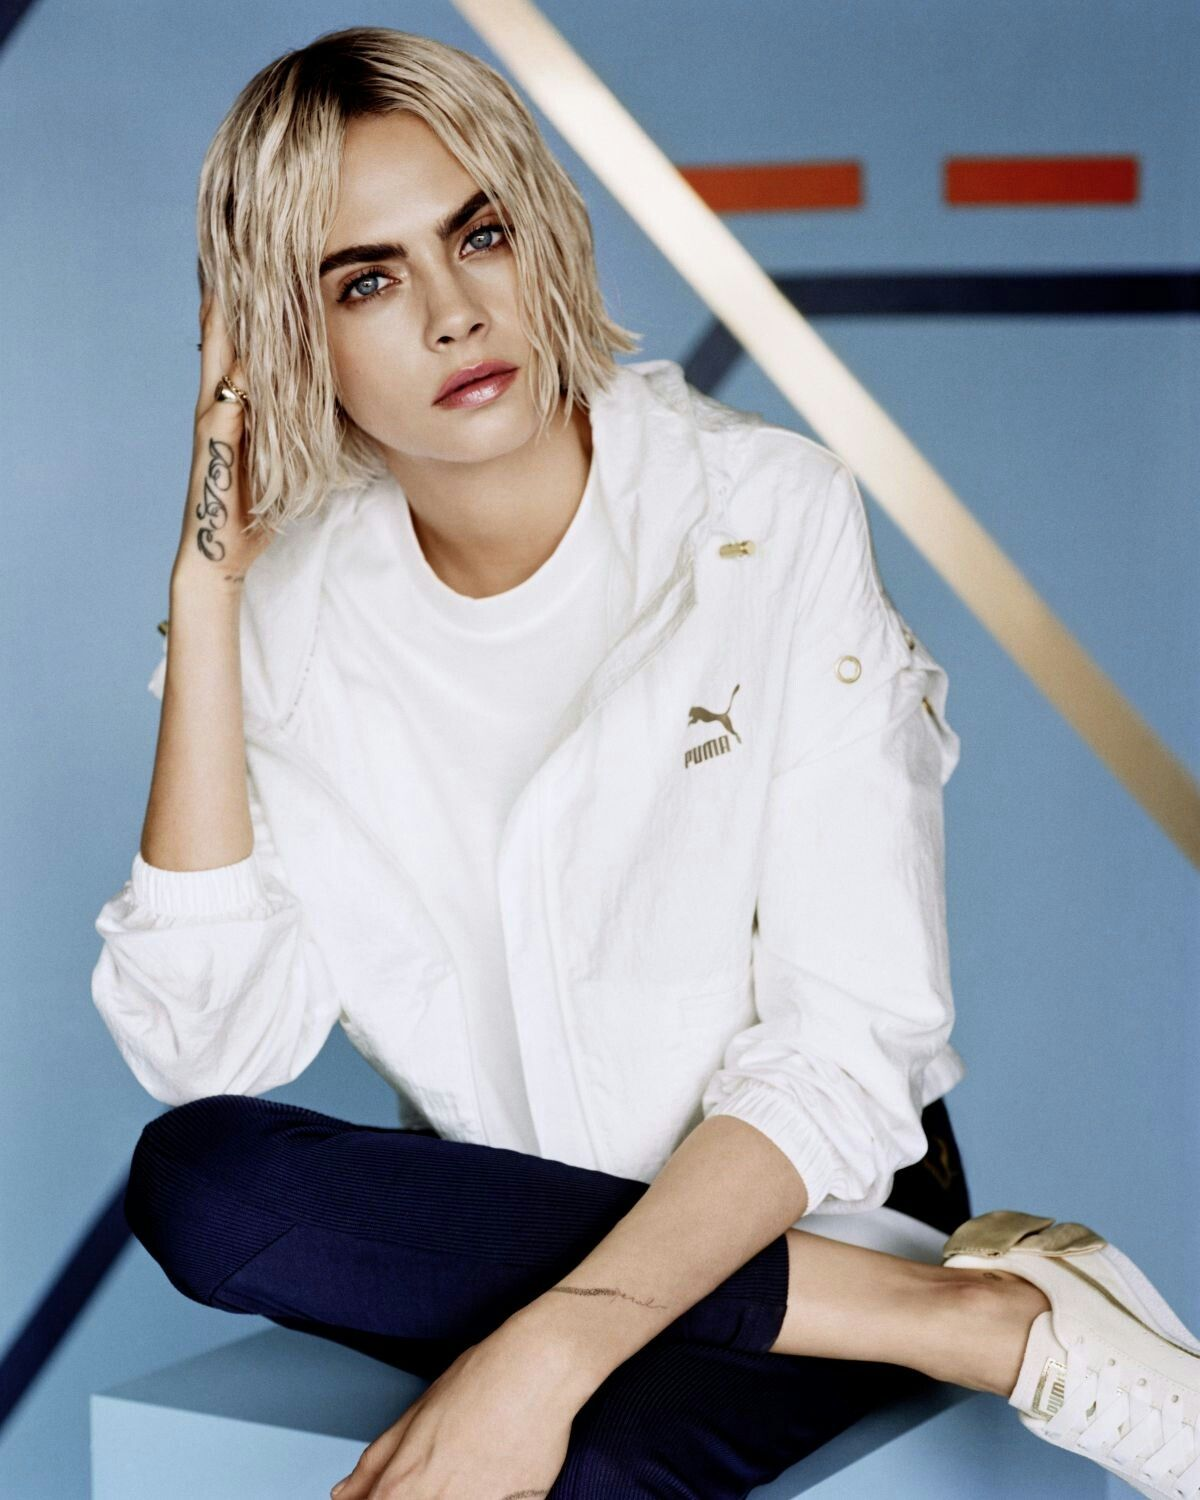 Cara Delevingne models the new Puma Suede Bow Varsity